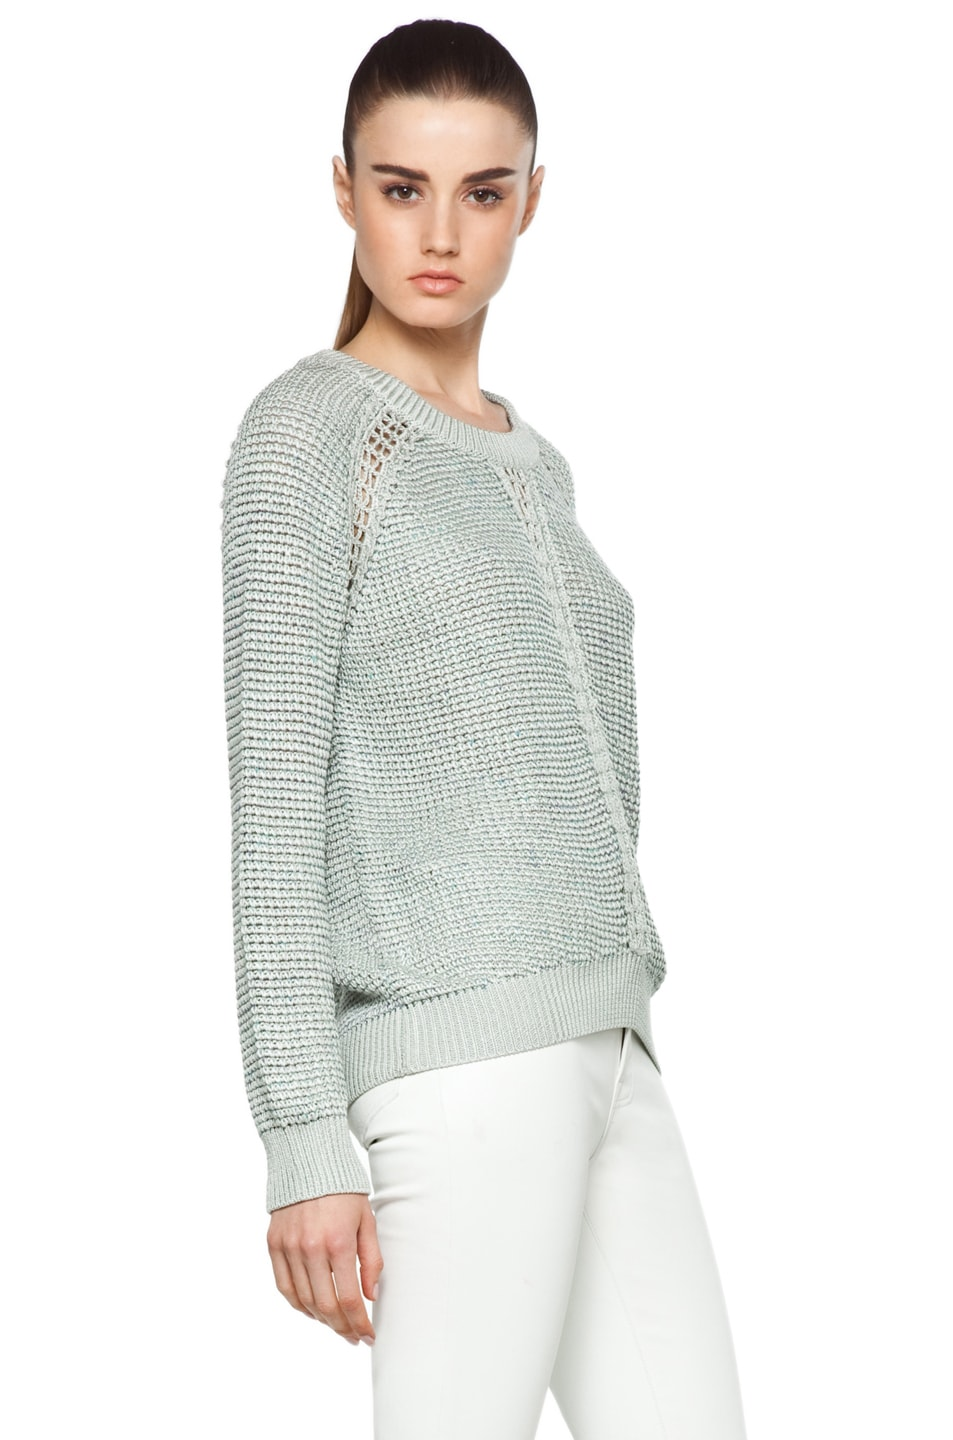 Image 3 of Theyskens' Theory Yigly Kyrt Sweater in Mint Green